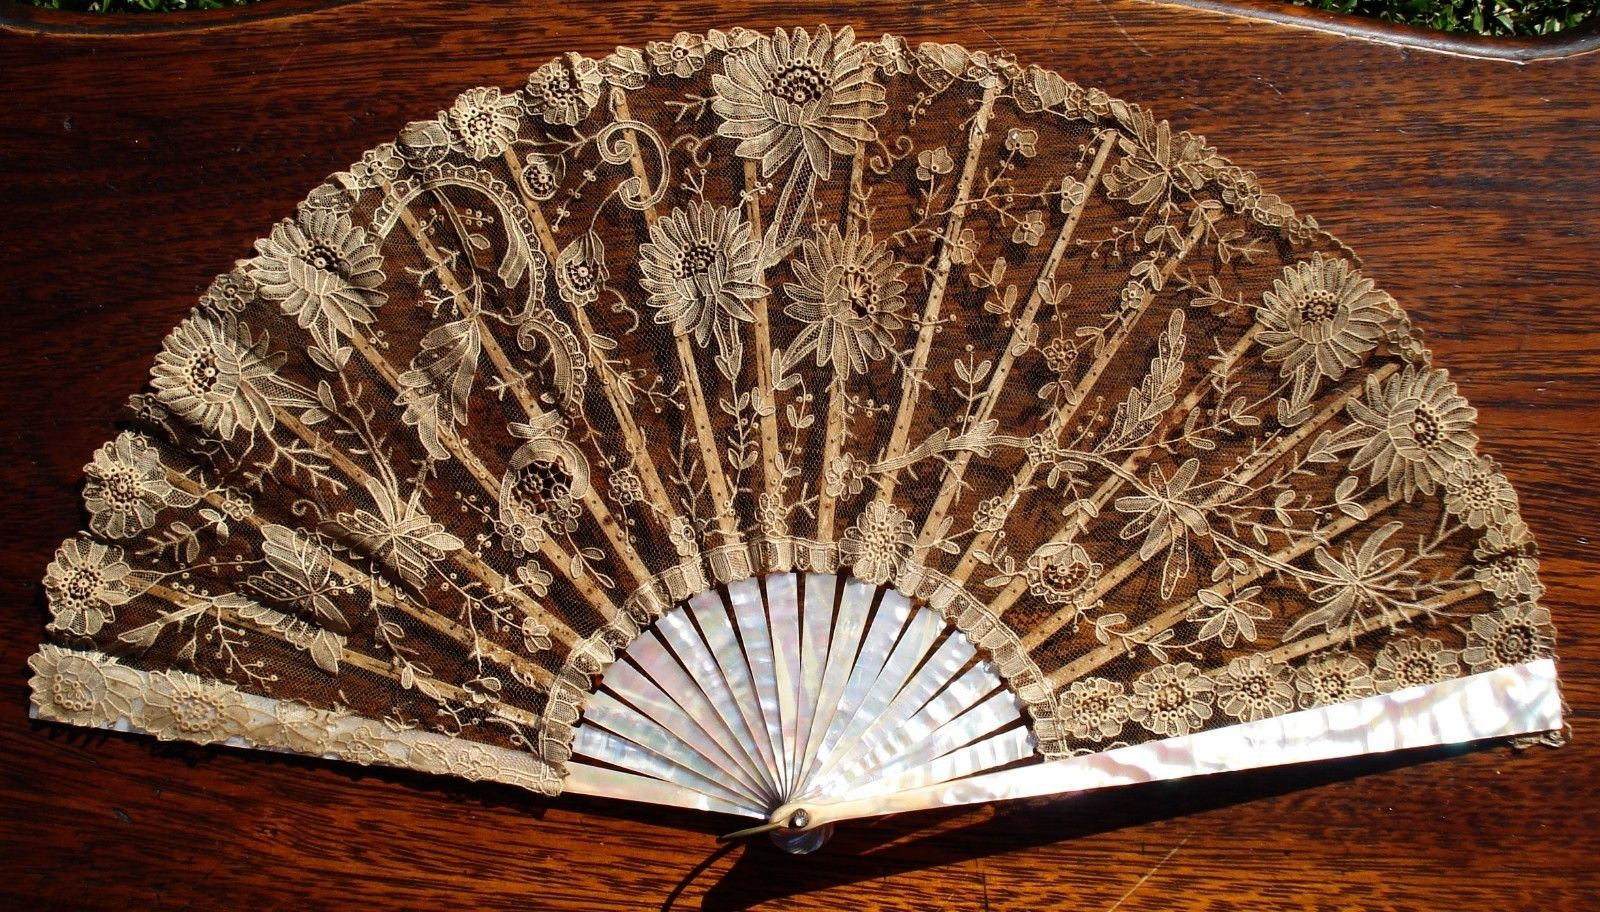 Antique Mother of Pearl and Lace Hand Fan | eBay